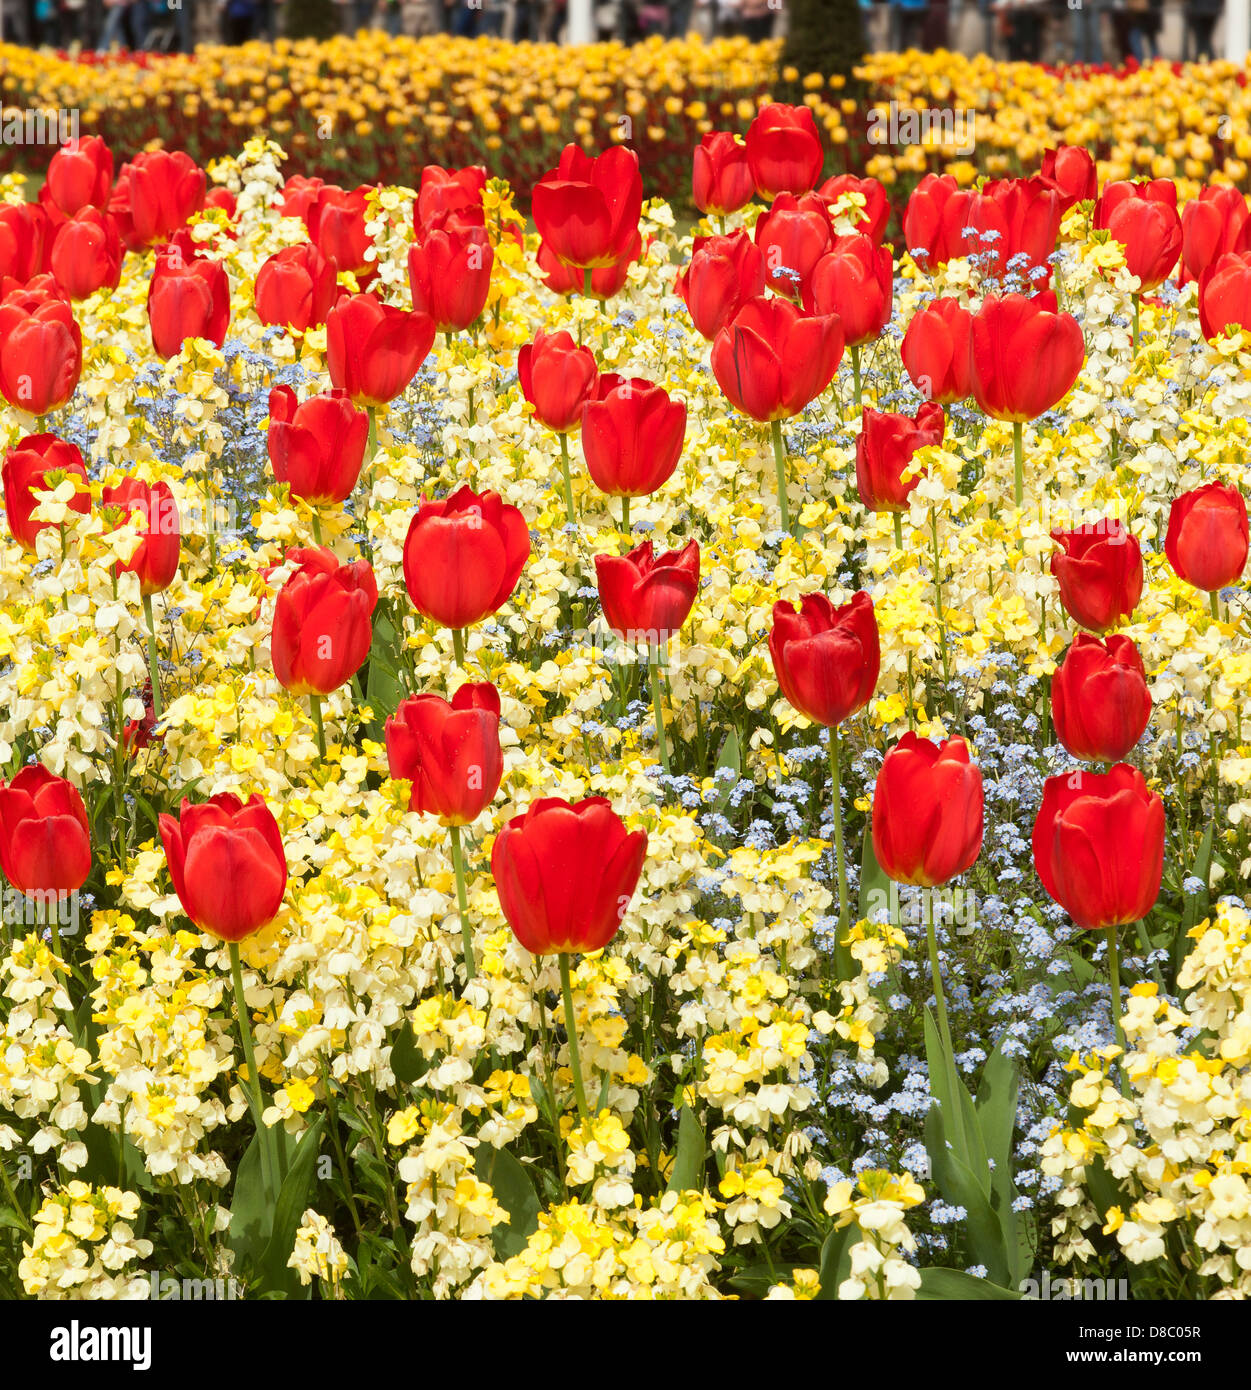 Red Tulips in a flower bed - Stock Image